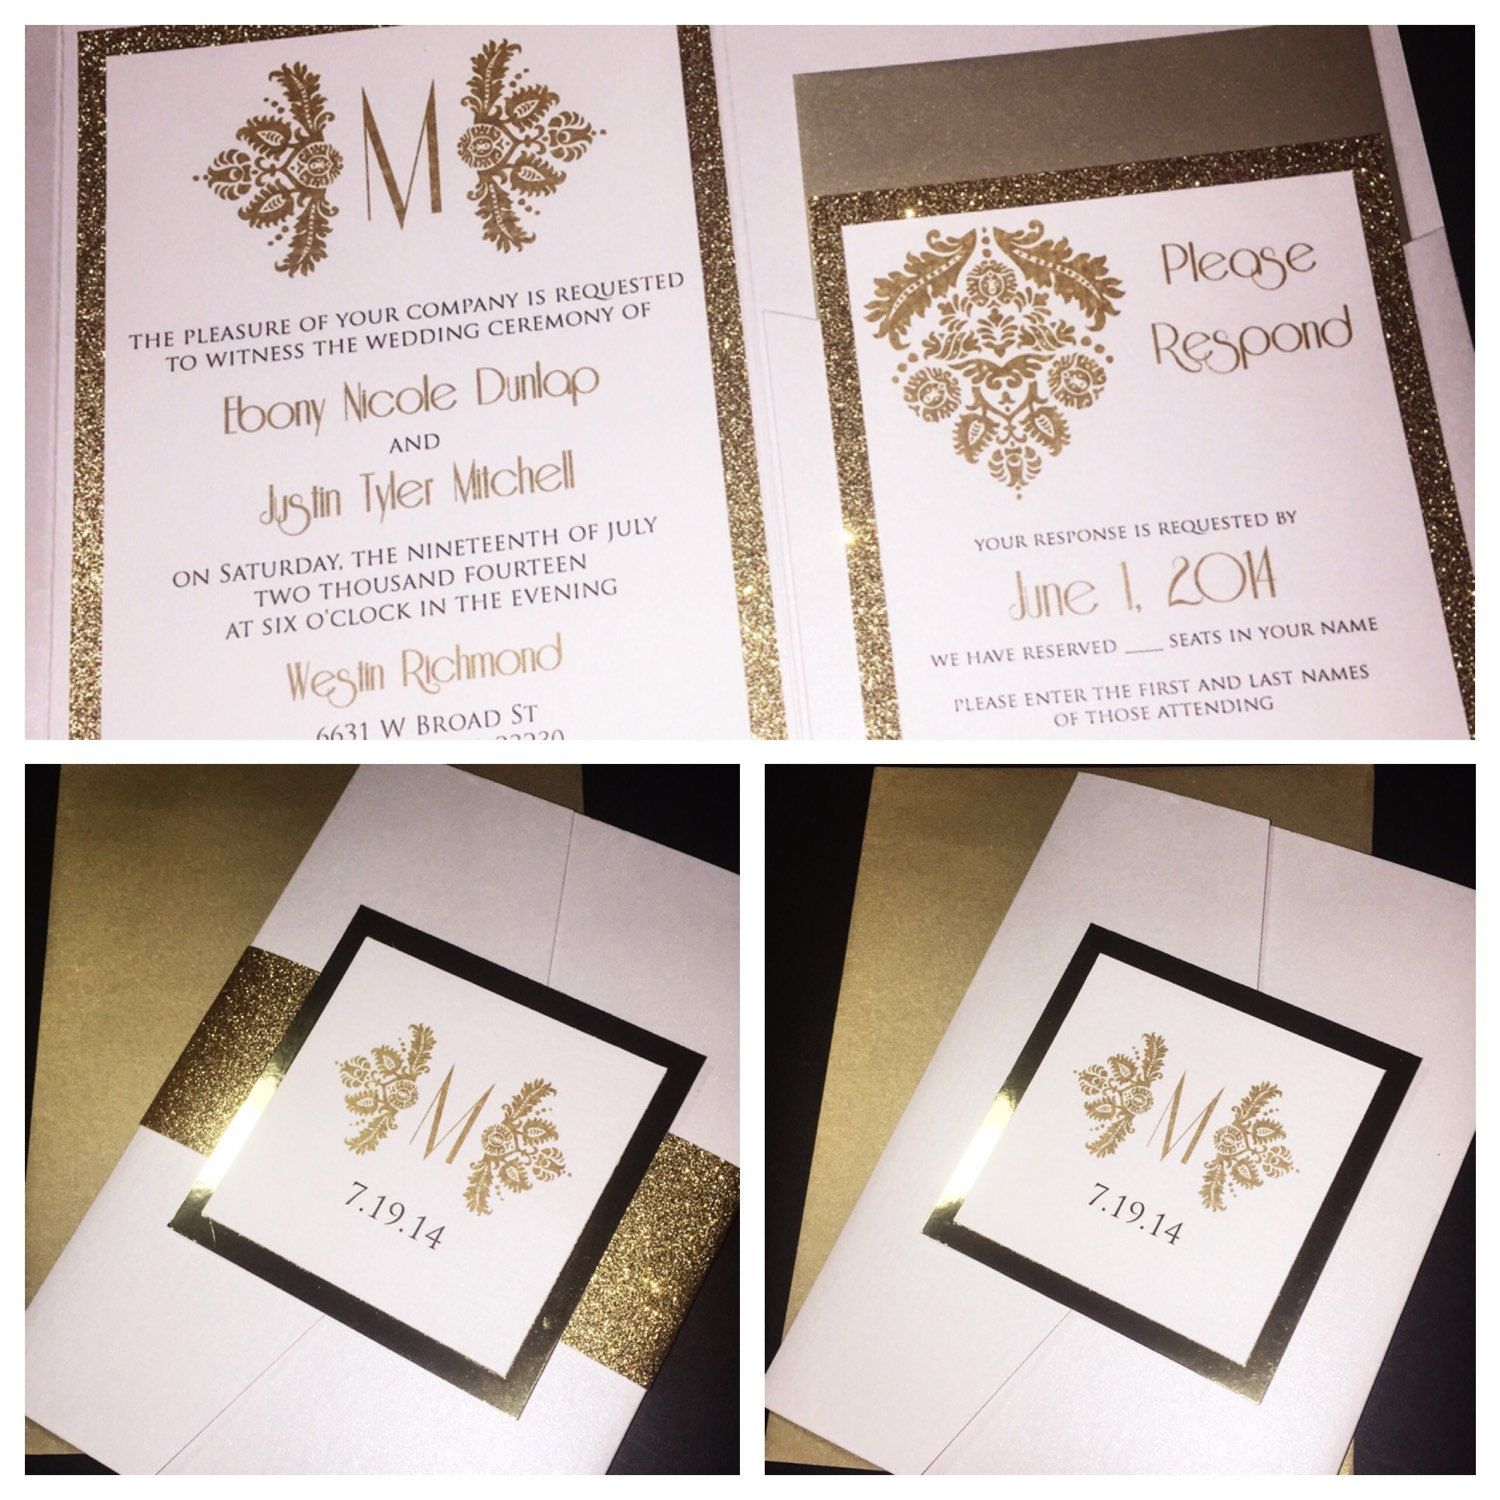 how to return address wedding envelopes%0A Return address    All wedding invitations are     off right now  Come visit  and take a look